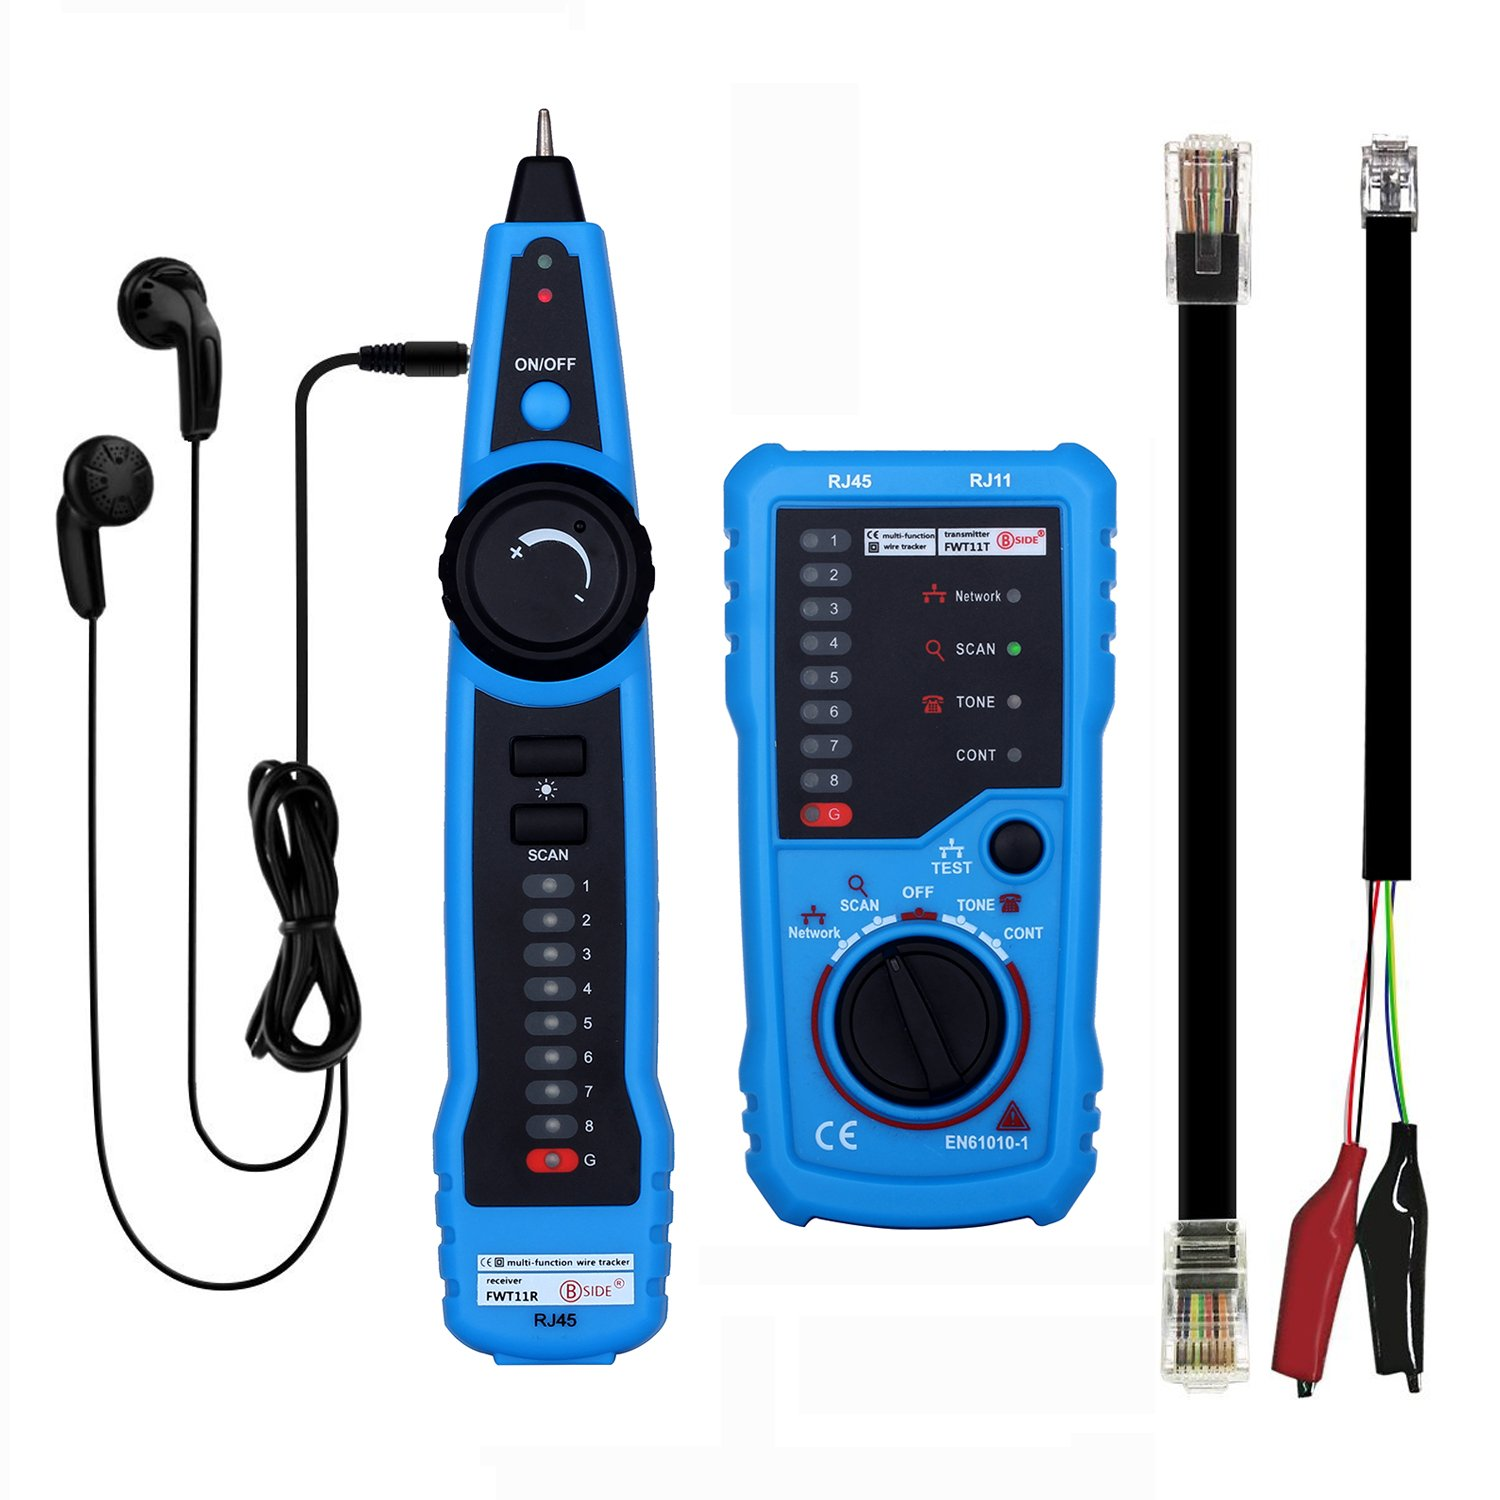 Wire Tracker Kit,RJ11 RJ45 CAT5 CAT6 Cable Tester Line Finder Multifunction Wire Tracer Toner Ethernet LAN Network Cable Tester for Network Cable Collation, Telephone Line Tester, Continuity Checking